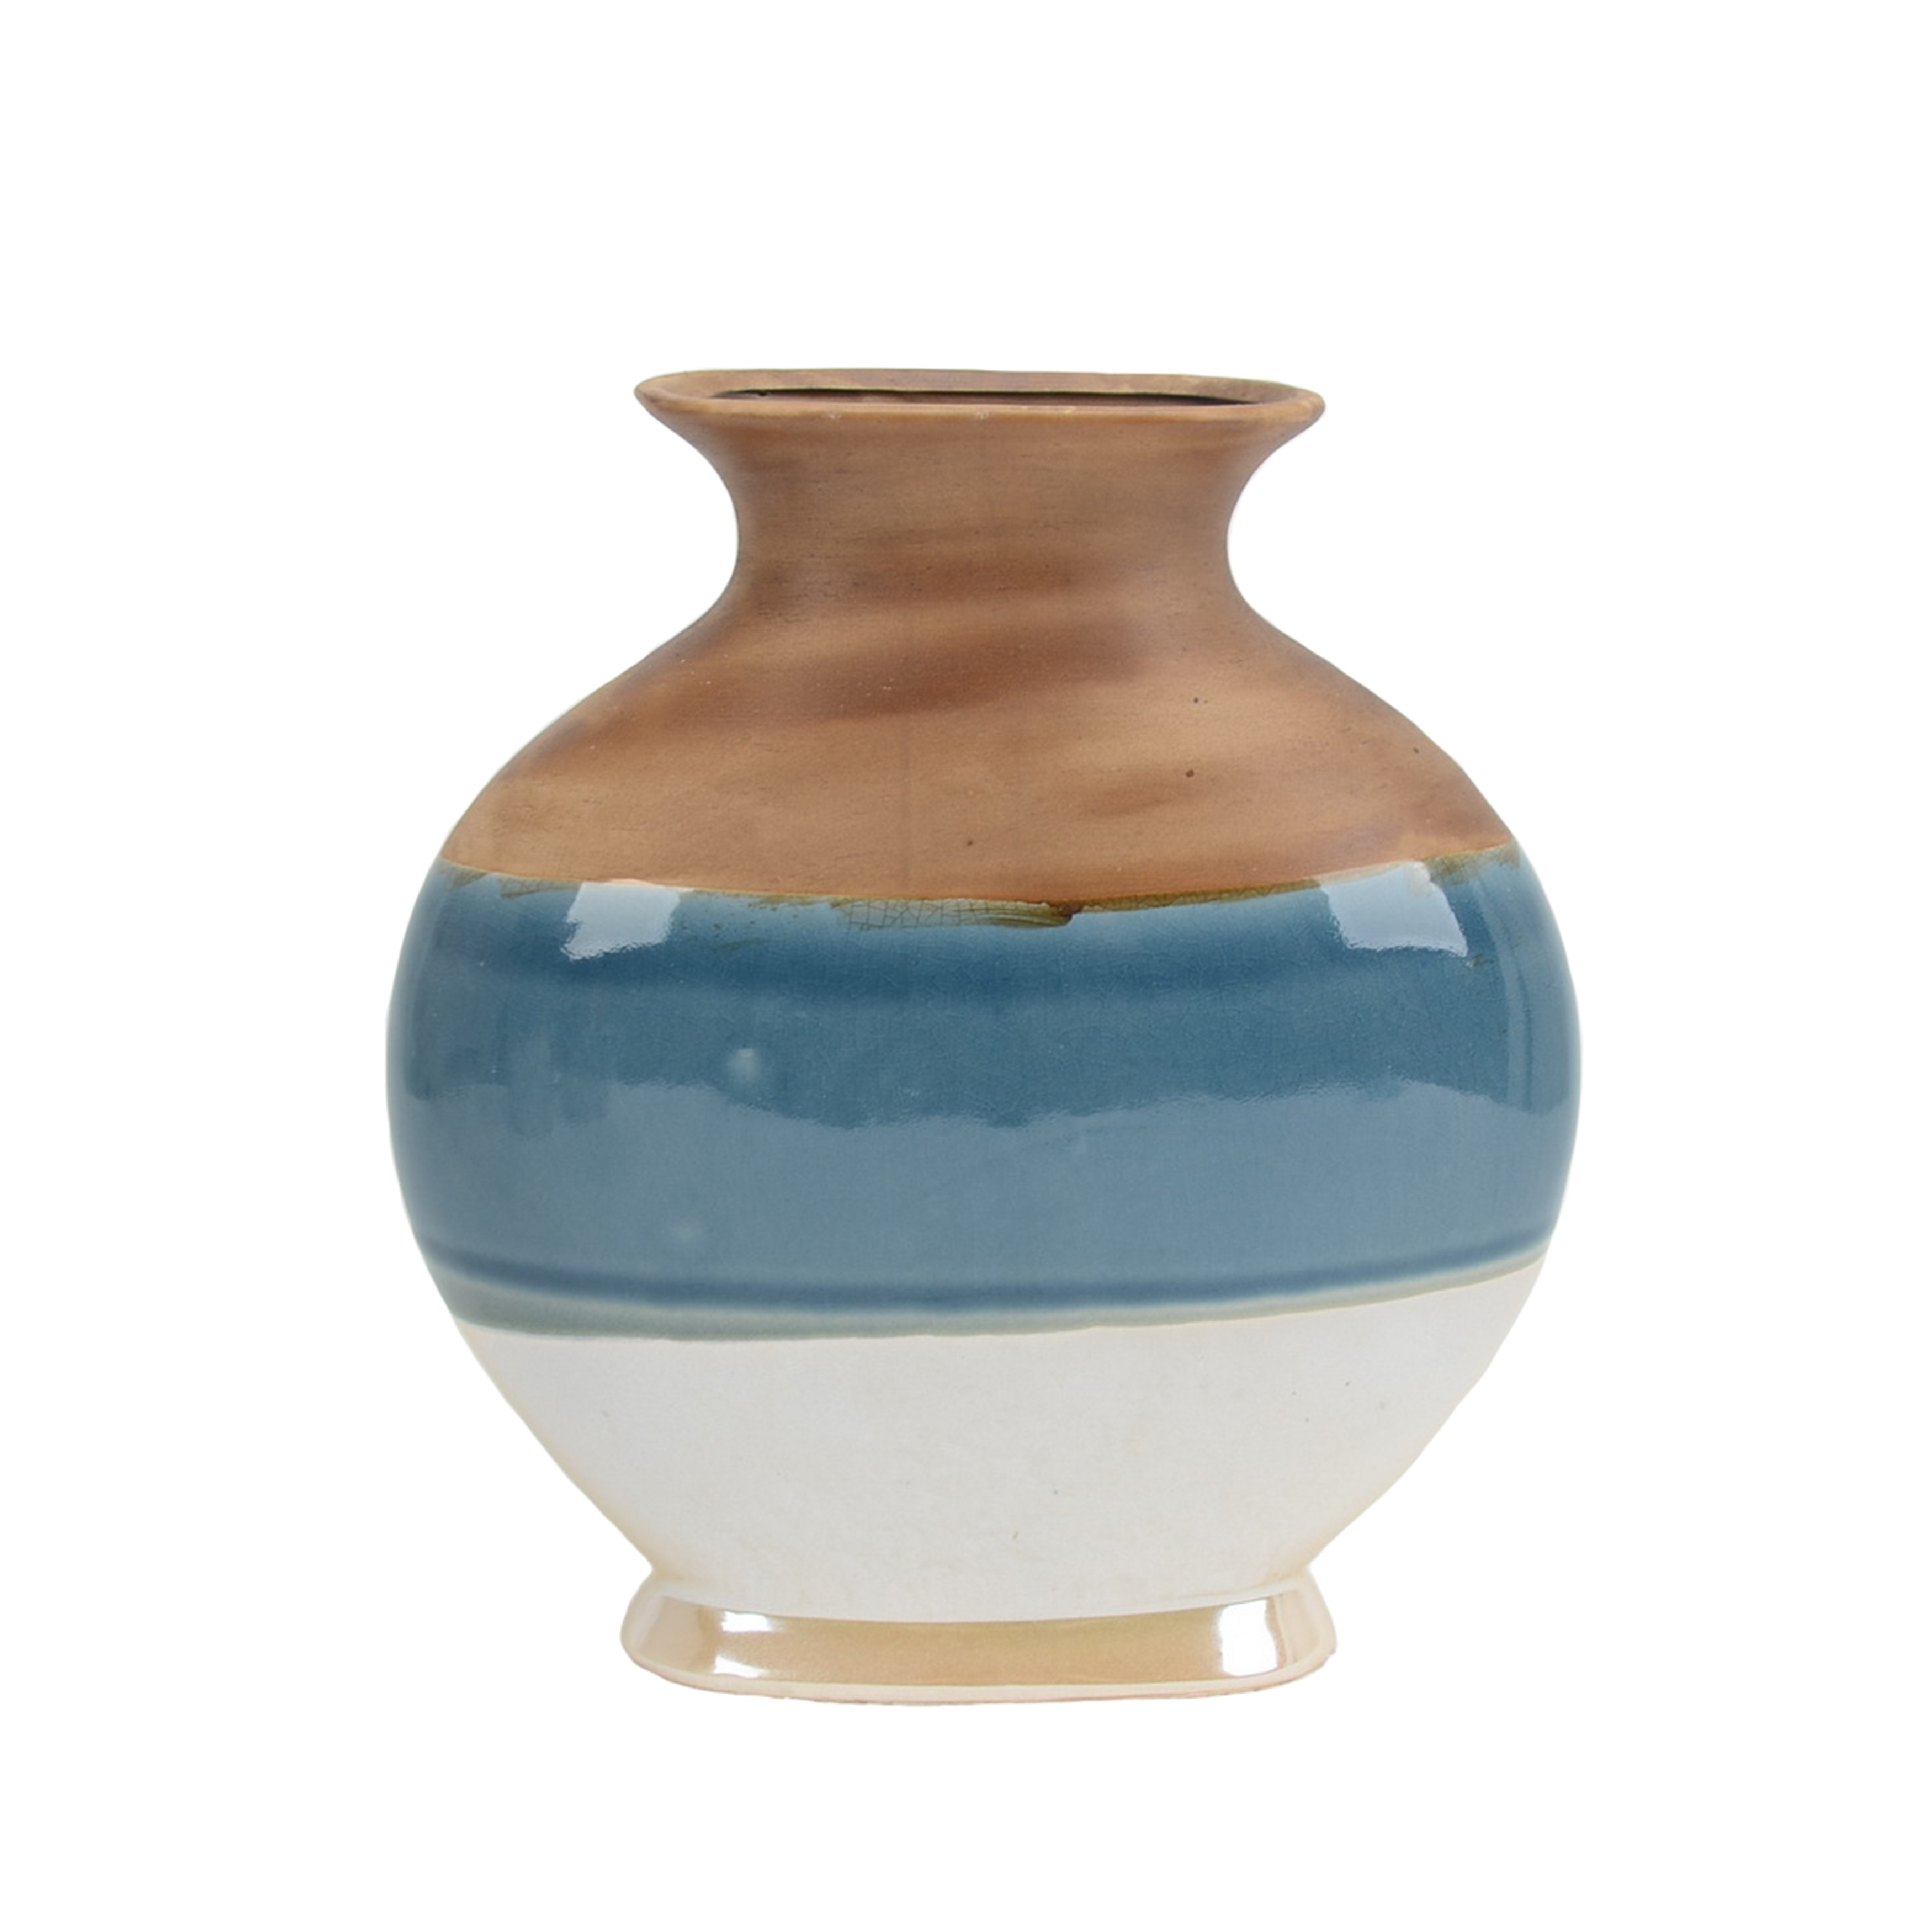 Decorative Ceramic Bellied Vase with Flared Opening and Bottom Rim, Multicolor